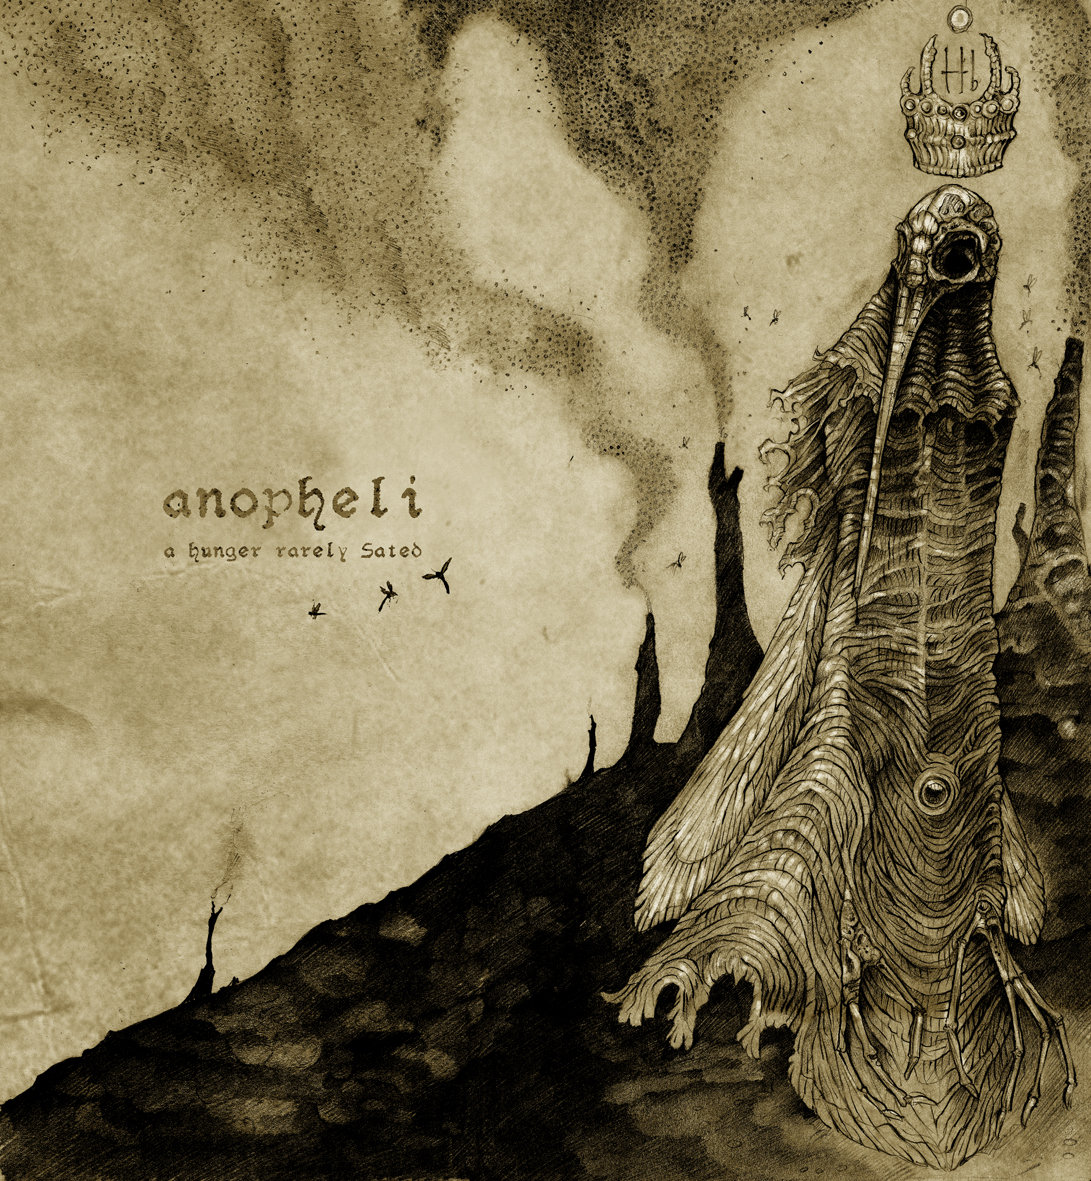 Anopheli - Part 2 @ 'A Hunger Rarely Sated' album (metal, oakland)